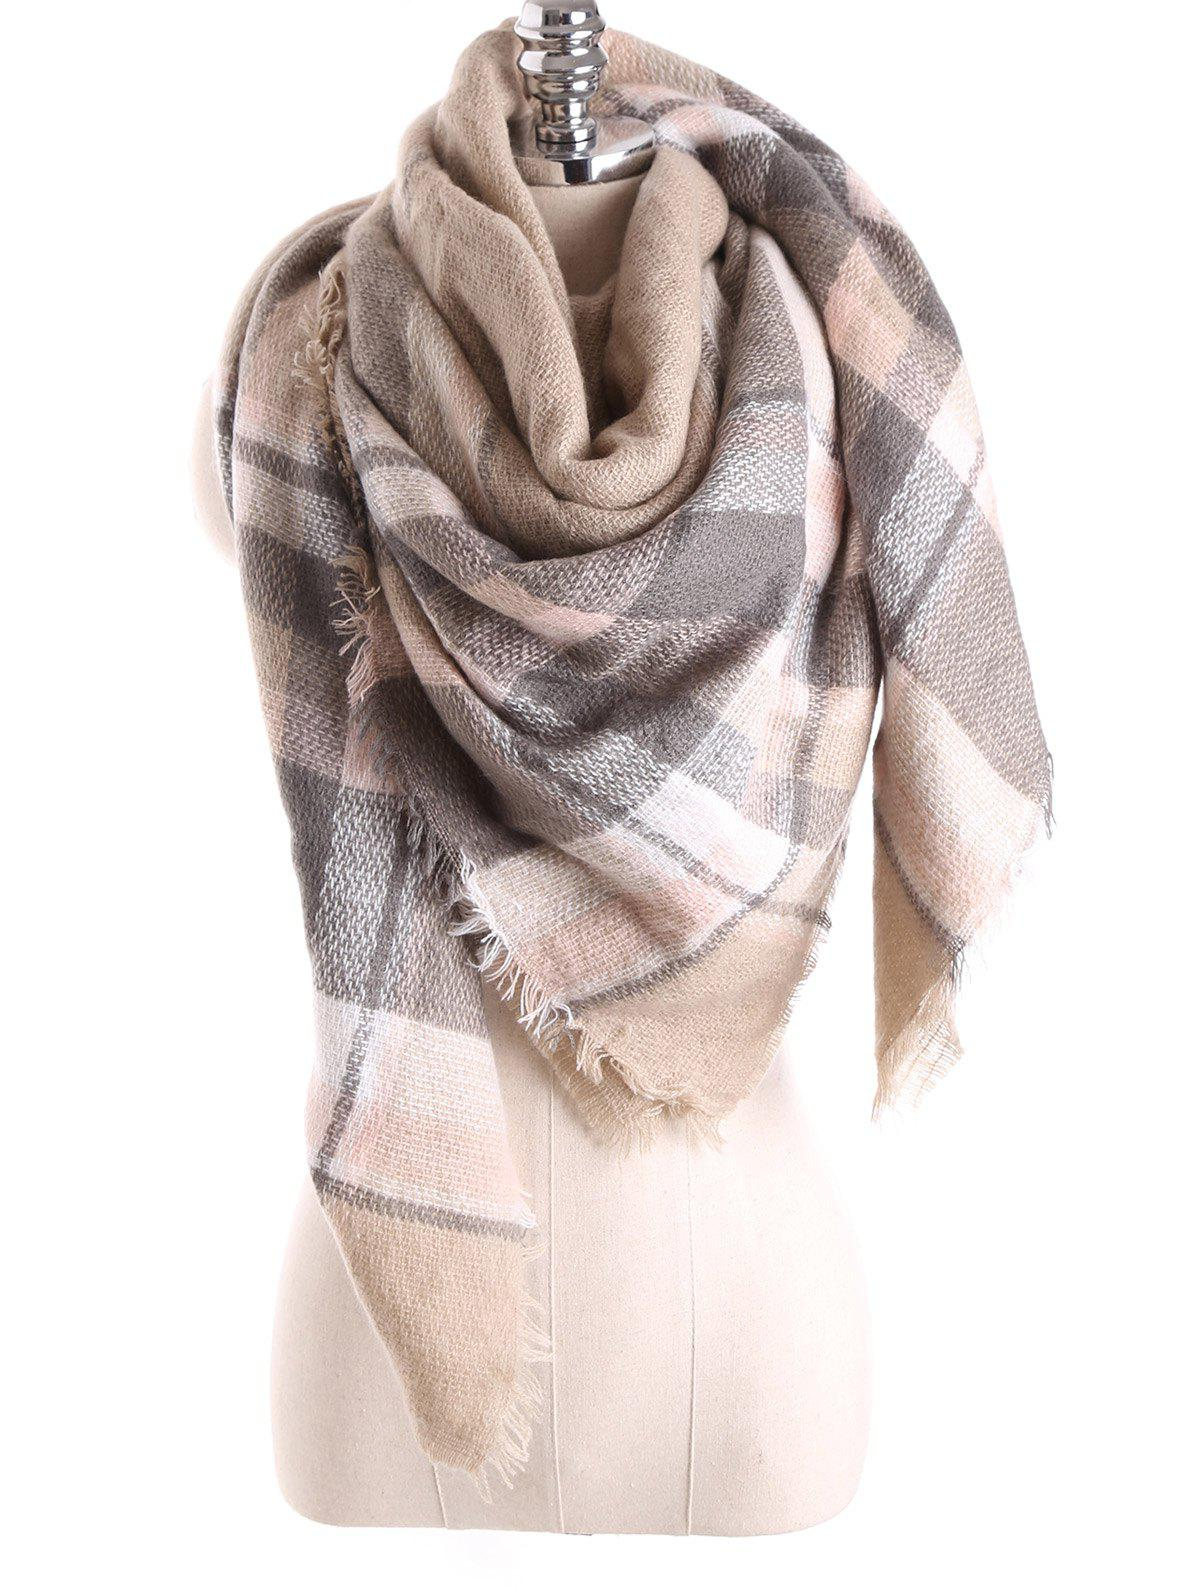 Trendy Warm Tartan Plaid Blanket Shawl Scarf